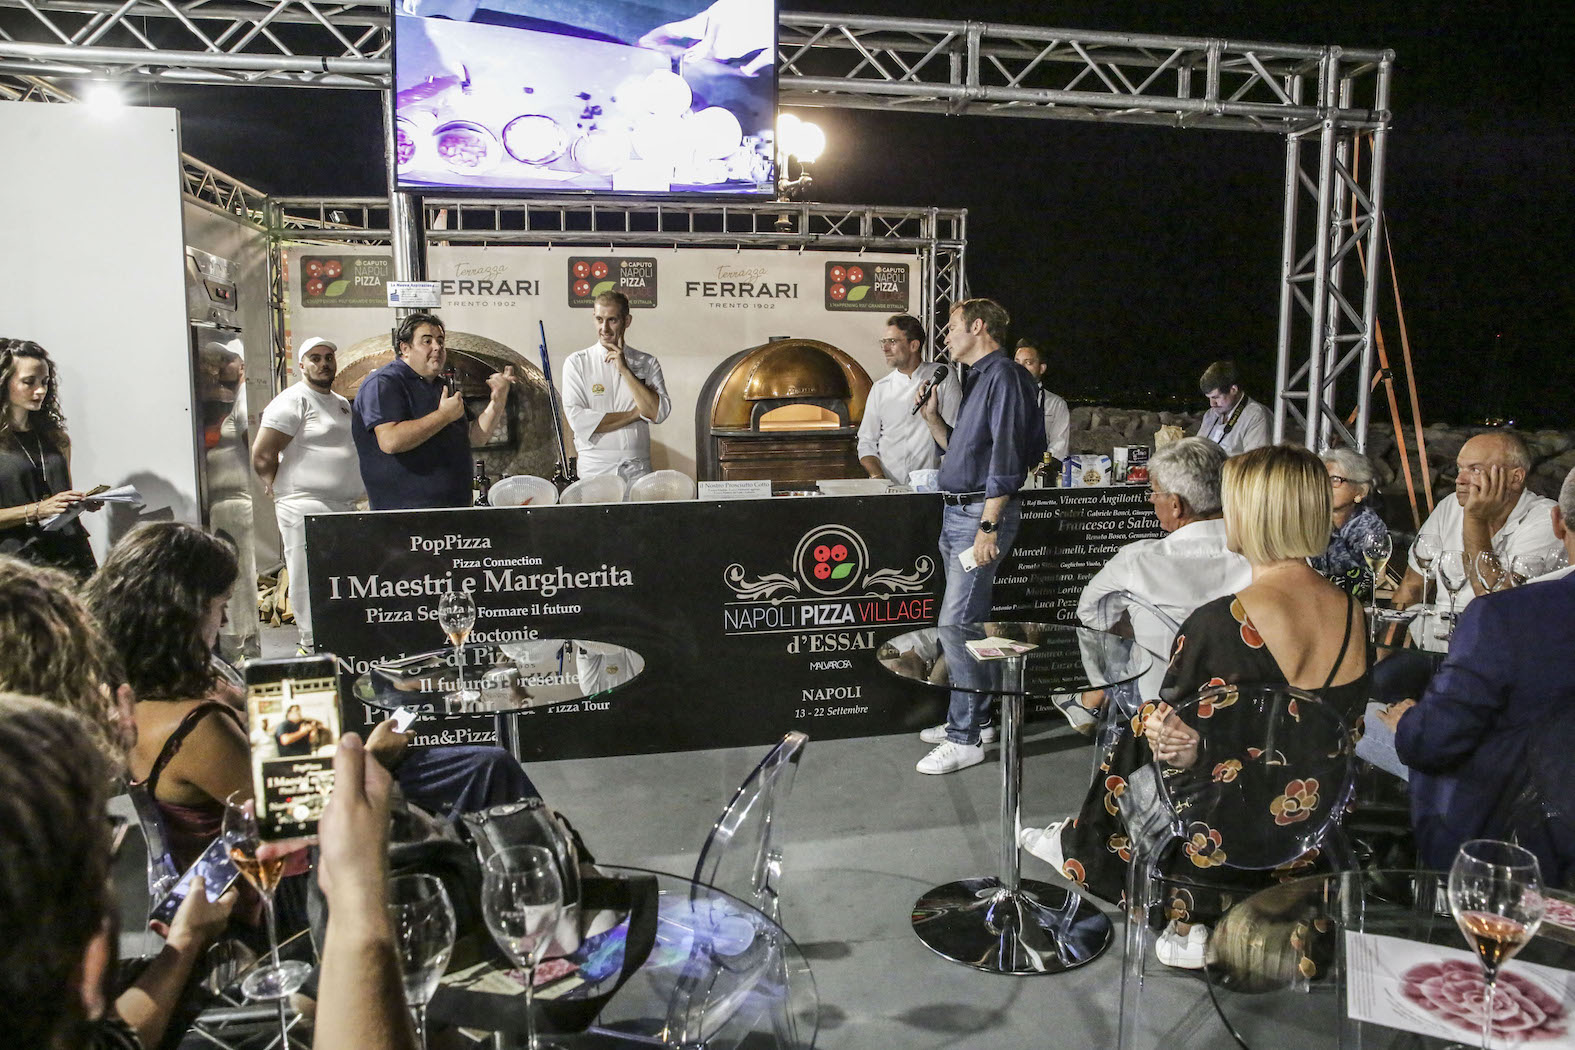 Photo of Napoli Pizza Village, una pizza in 20 secondi. Nel weekend Anastasio, Mamhood e Fred De Palma sul palco di RTL 102.5